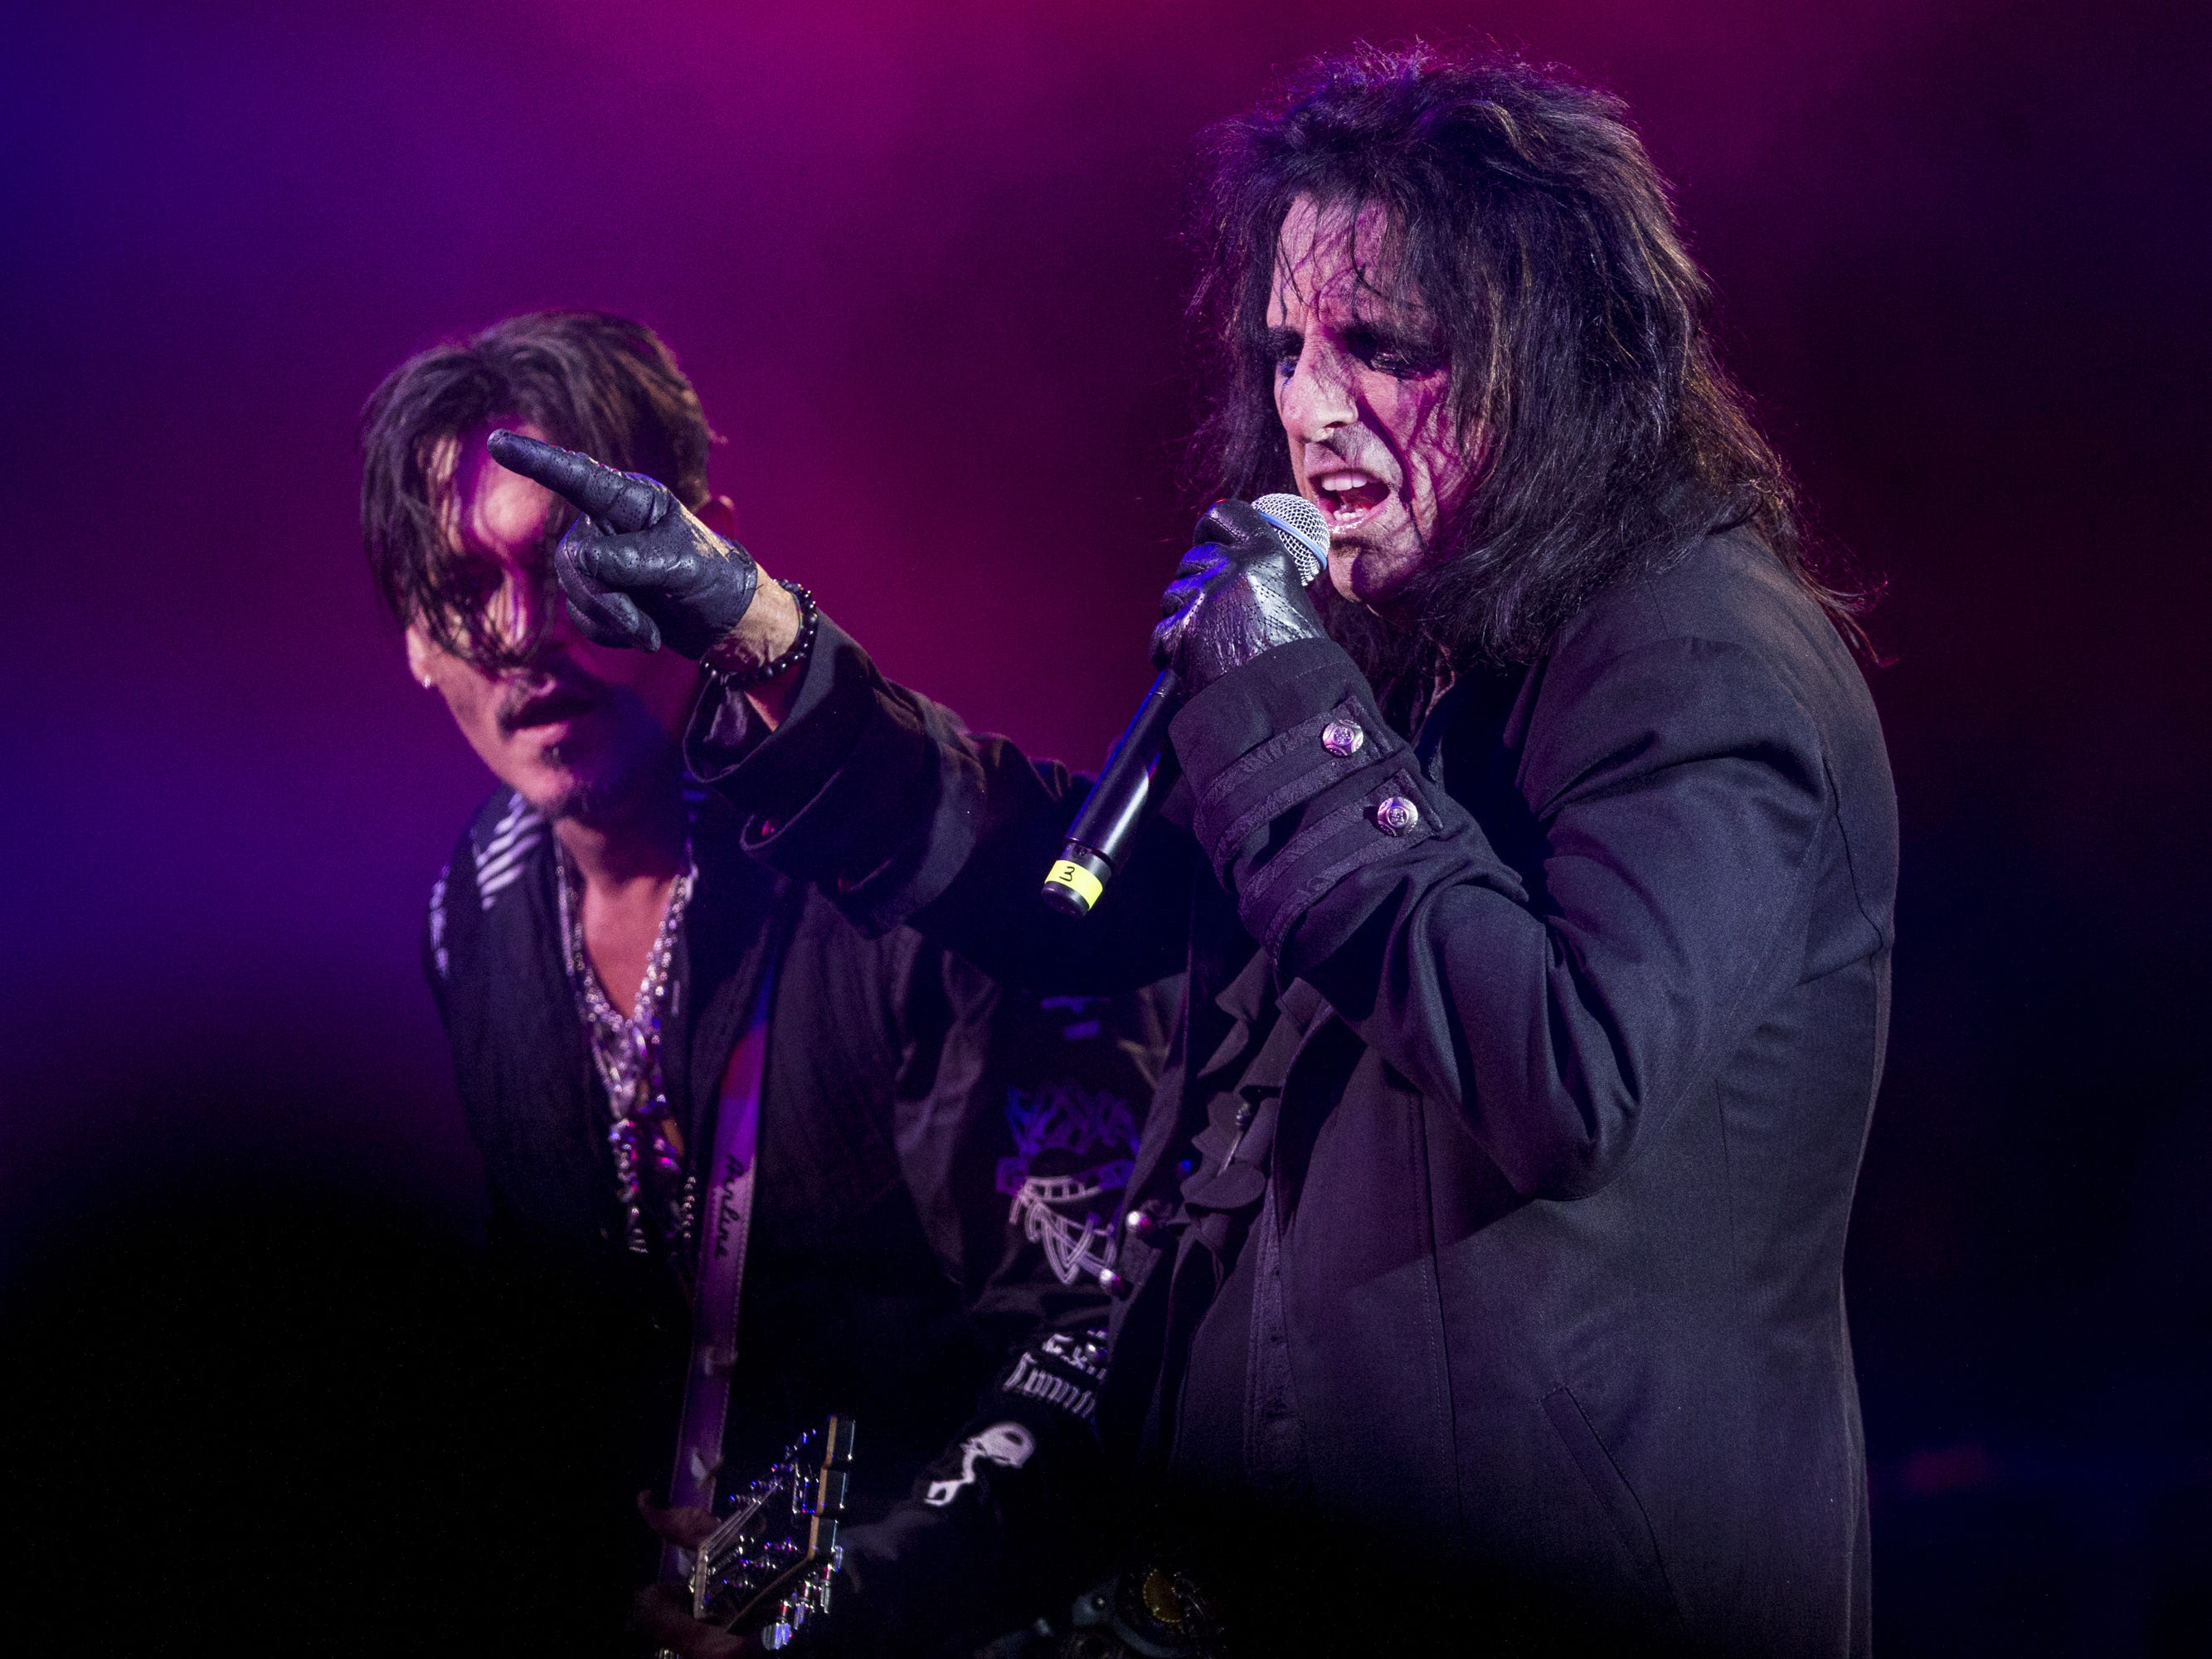 Alice Cooper's Christmas Pudding rocked with Johnny Depp, Blue Oyster Cult and more